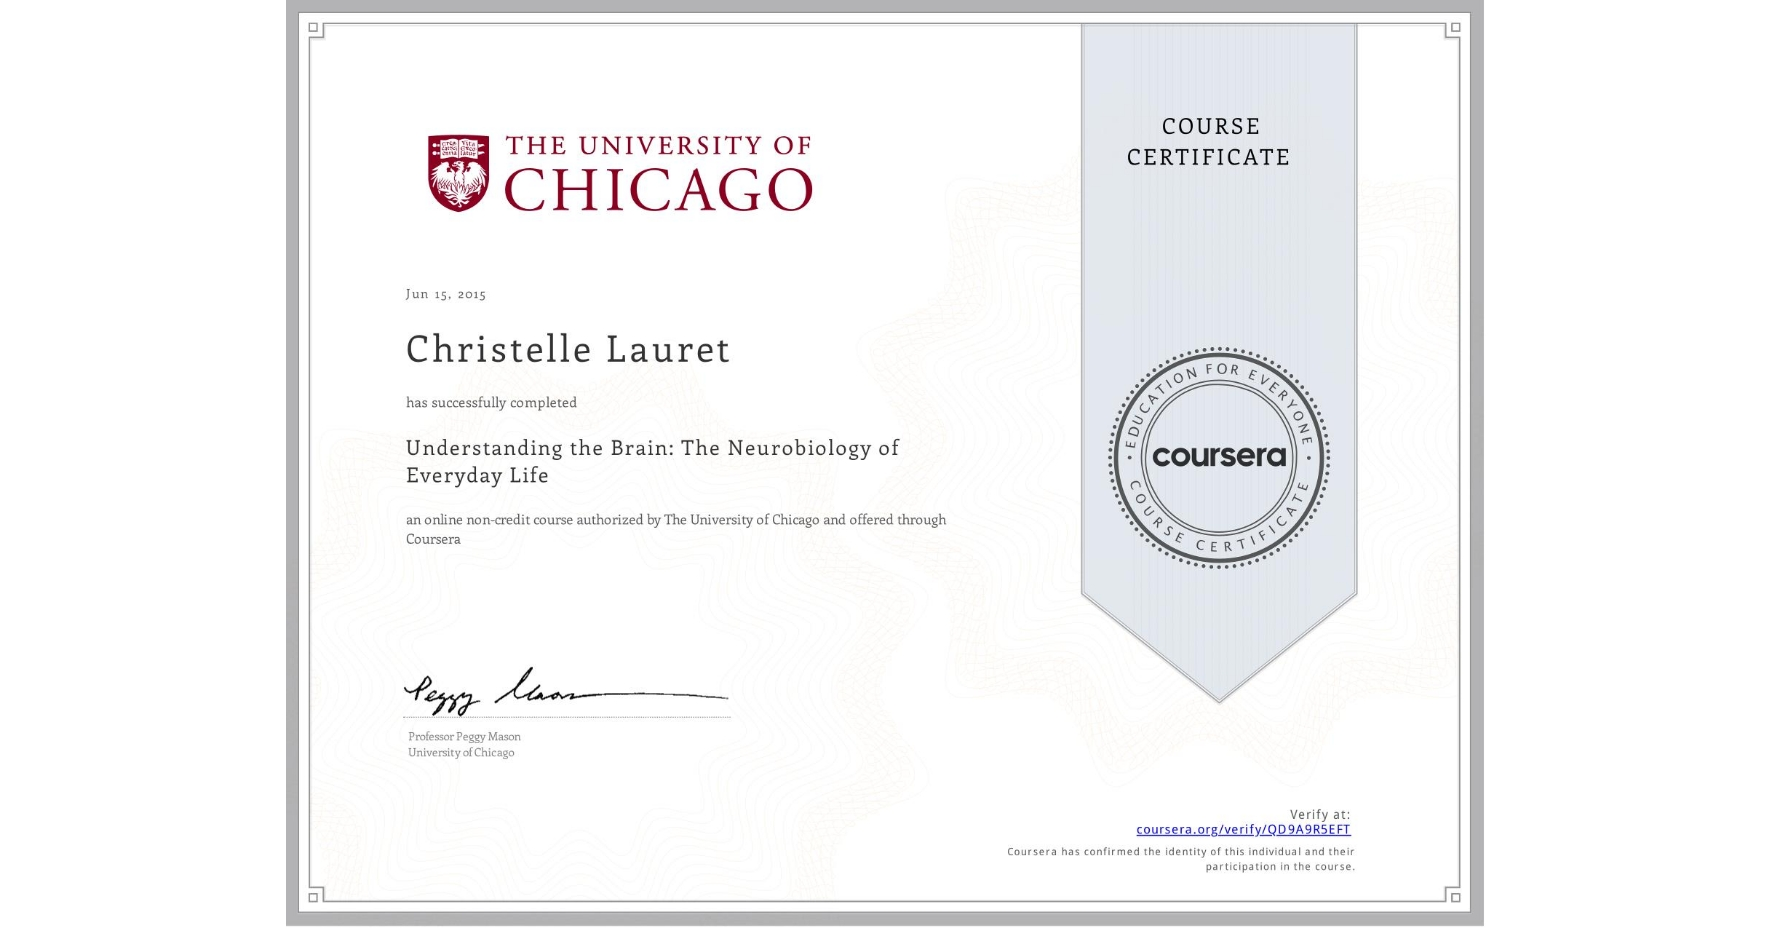 View certificate for Christelle Lauret, Understanding the Brain: The Neurobiology of Everyday Life, an online non-credit course authorized by The University of Chicago and offered through Coursera